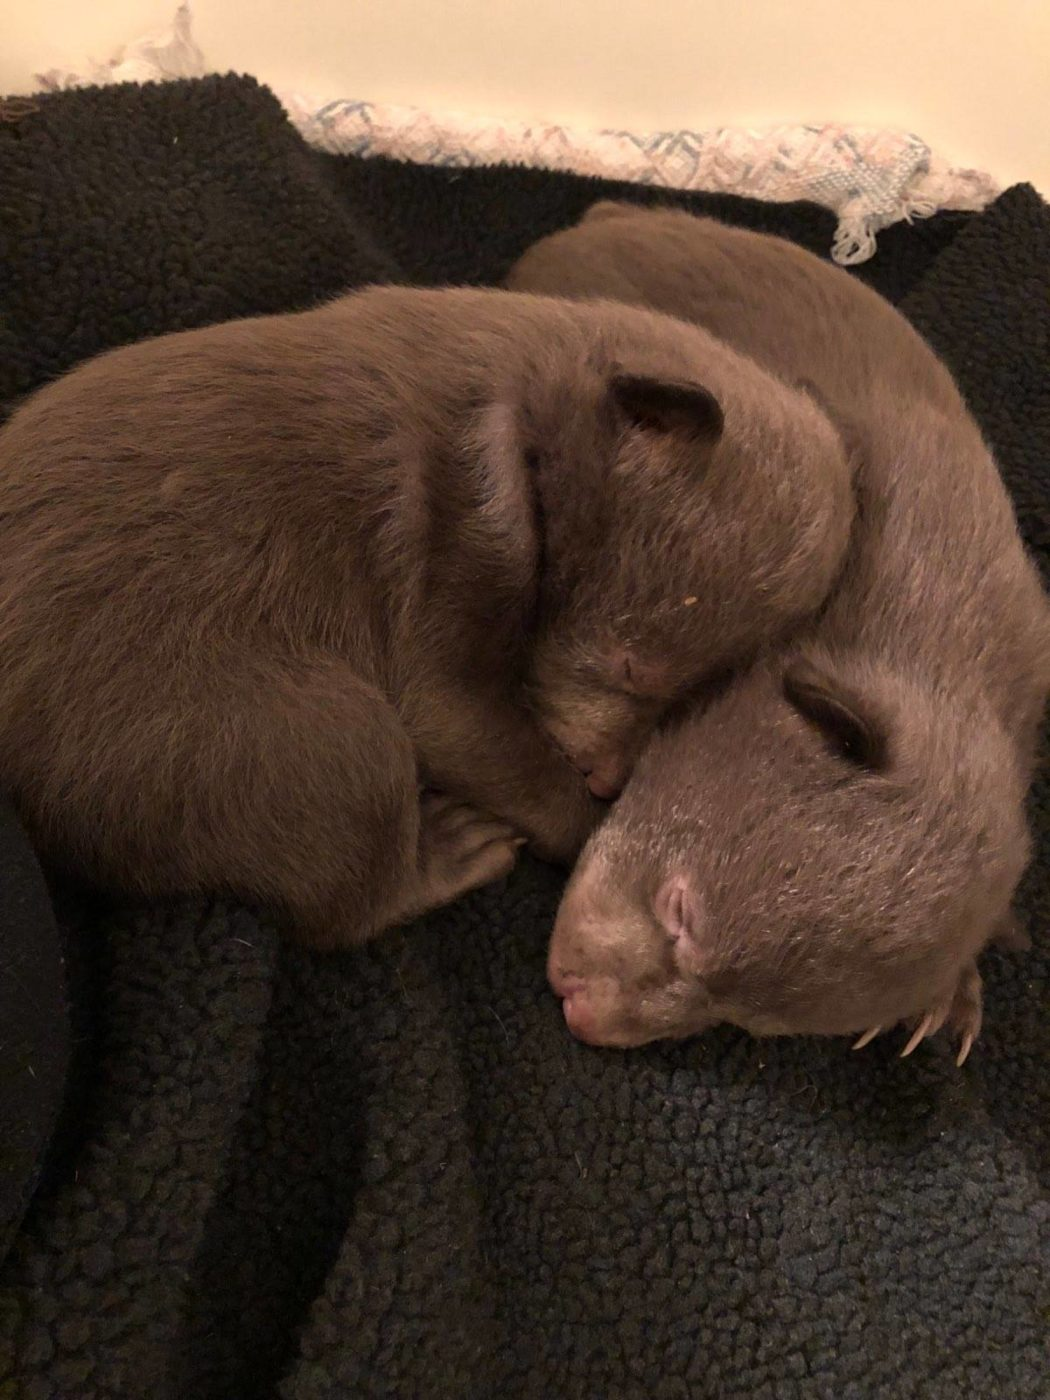 CDFW Wardens Investigating Orphaned Bear Cubs